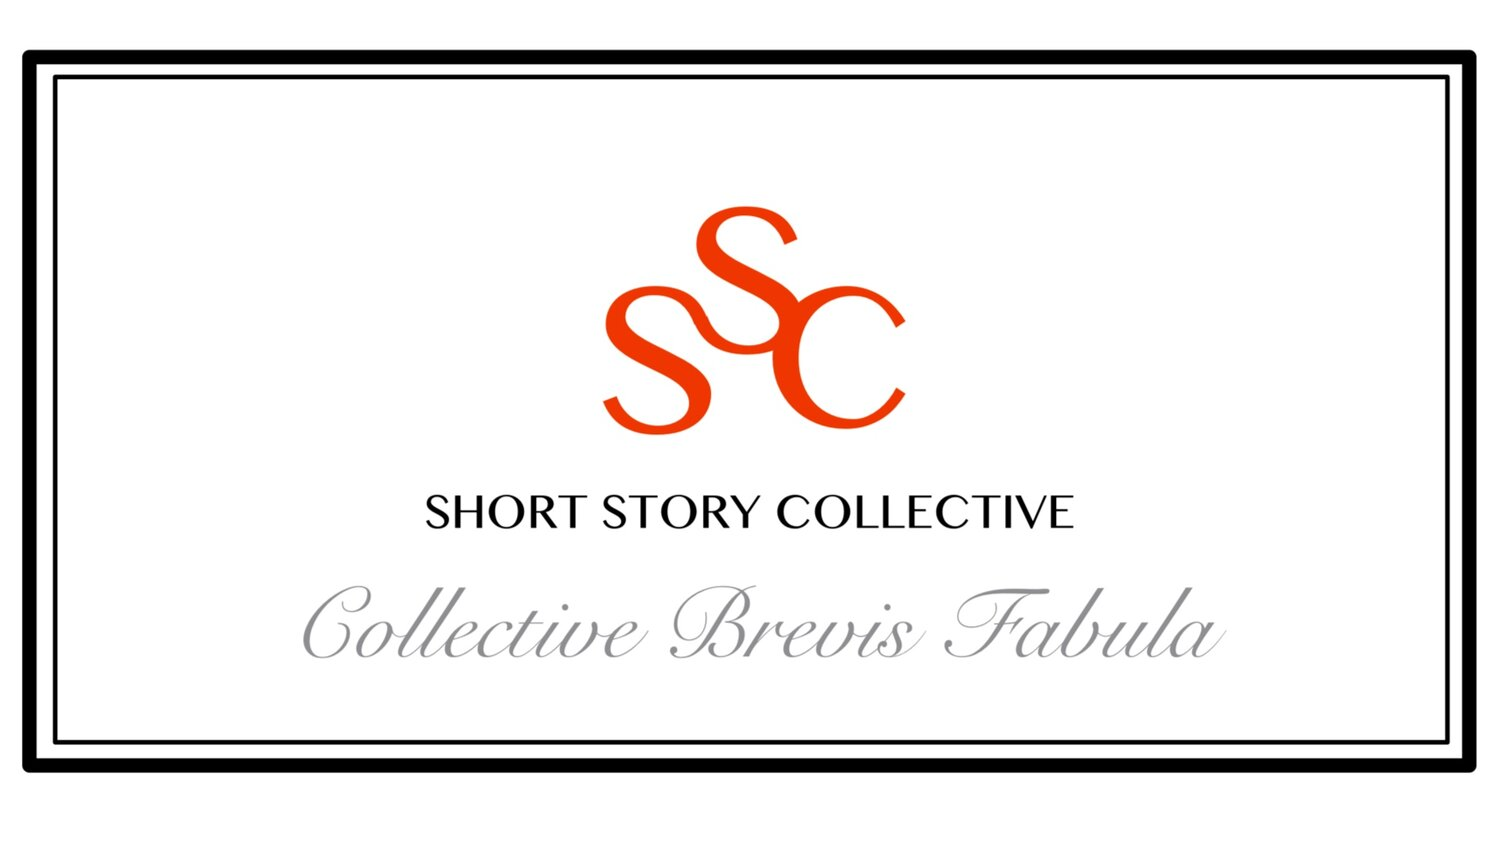 SHORT STORY COLLECTIVE